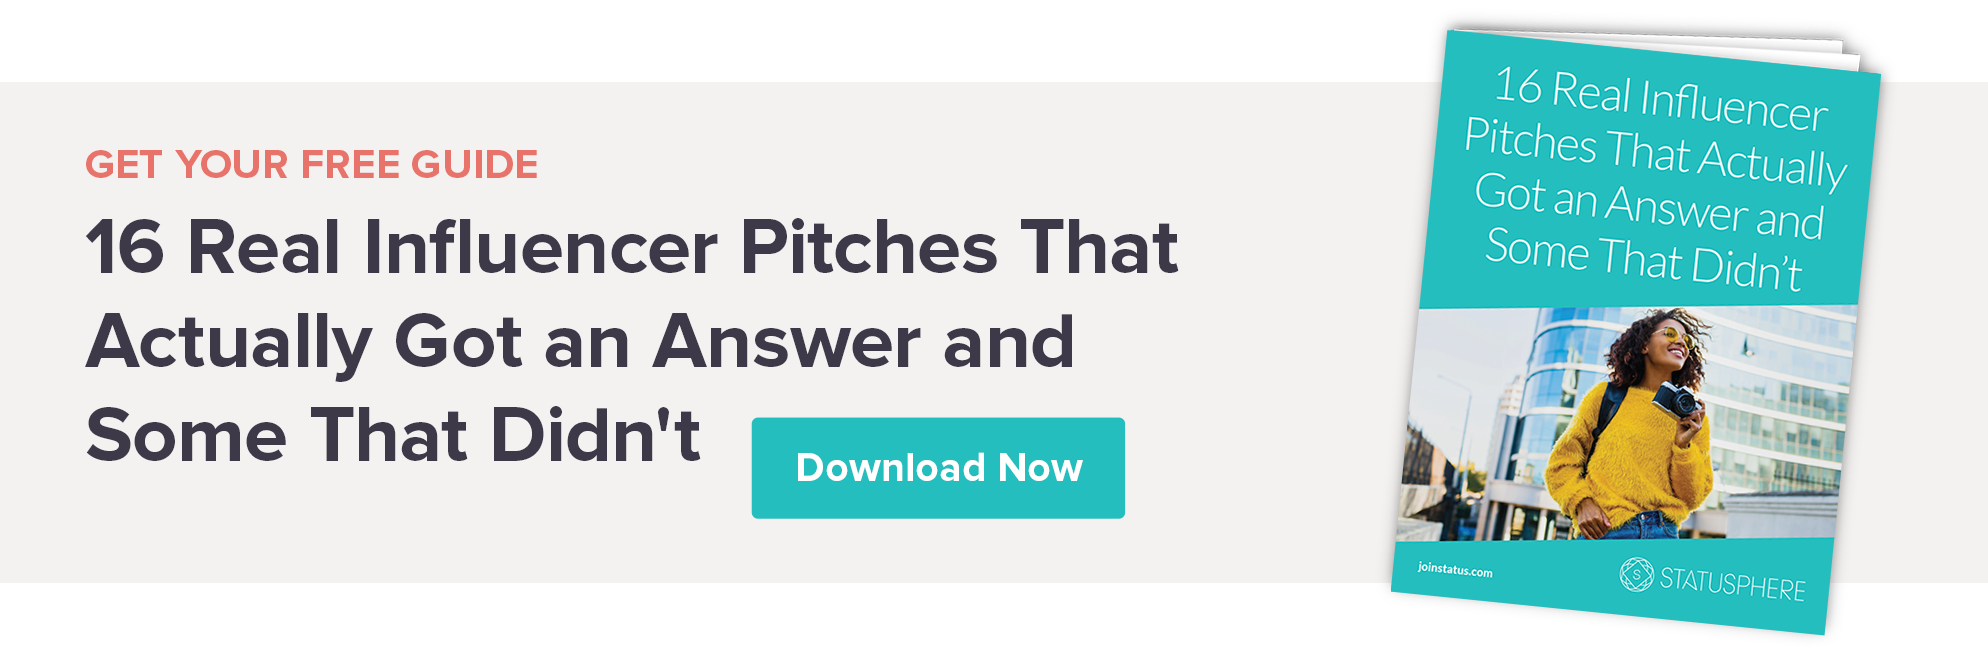 influencer pitching